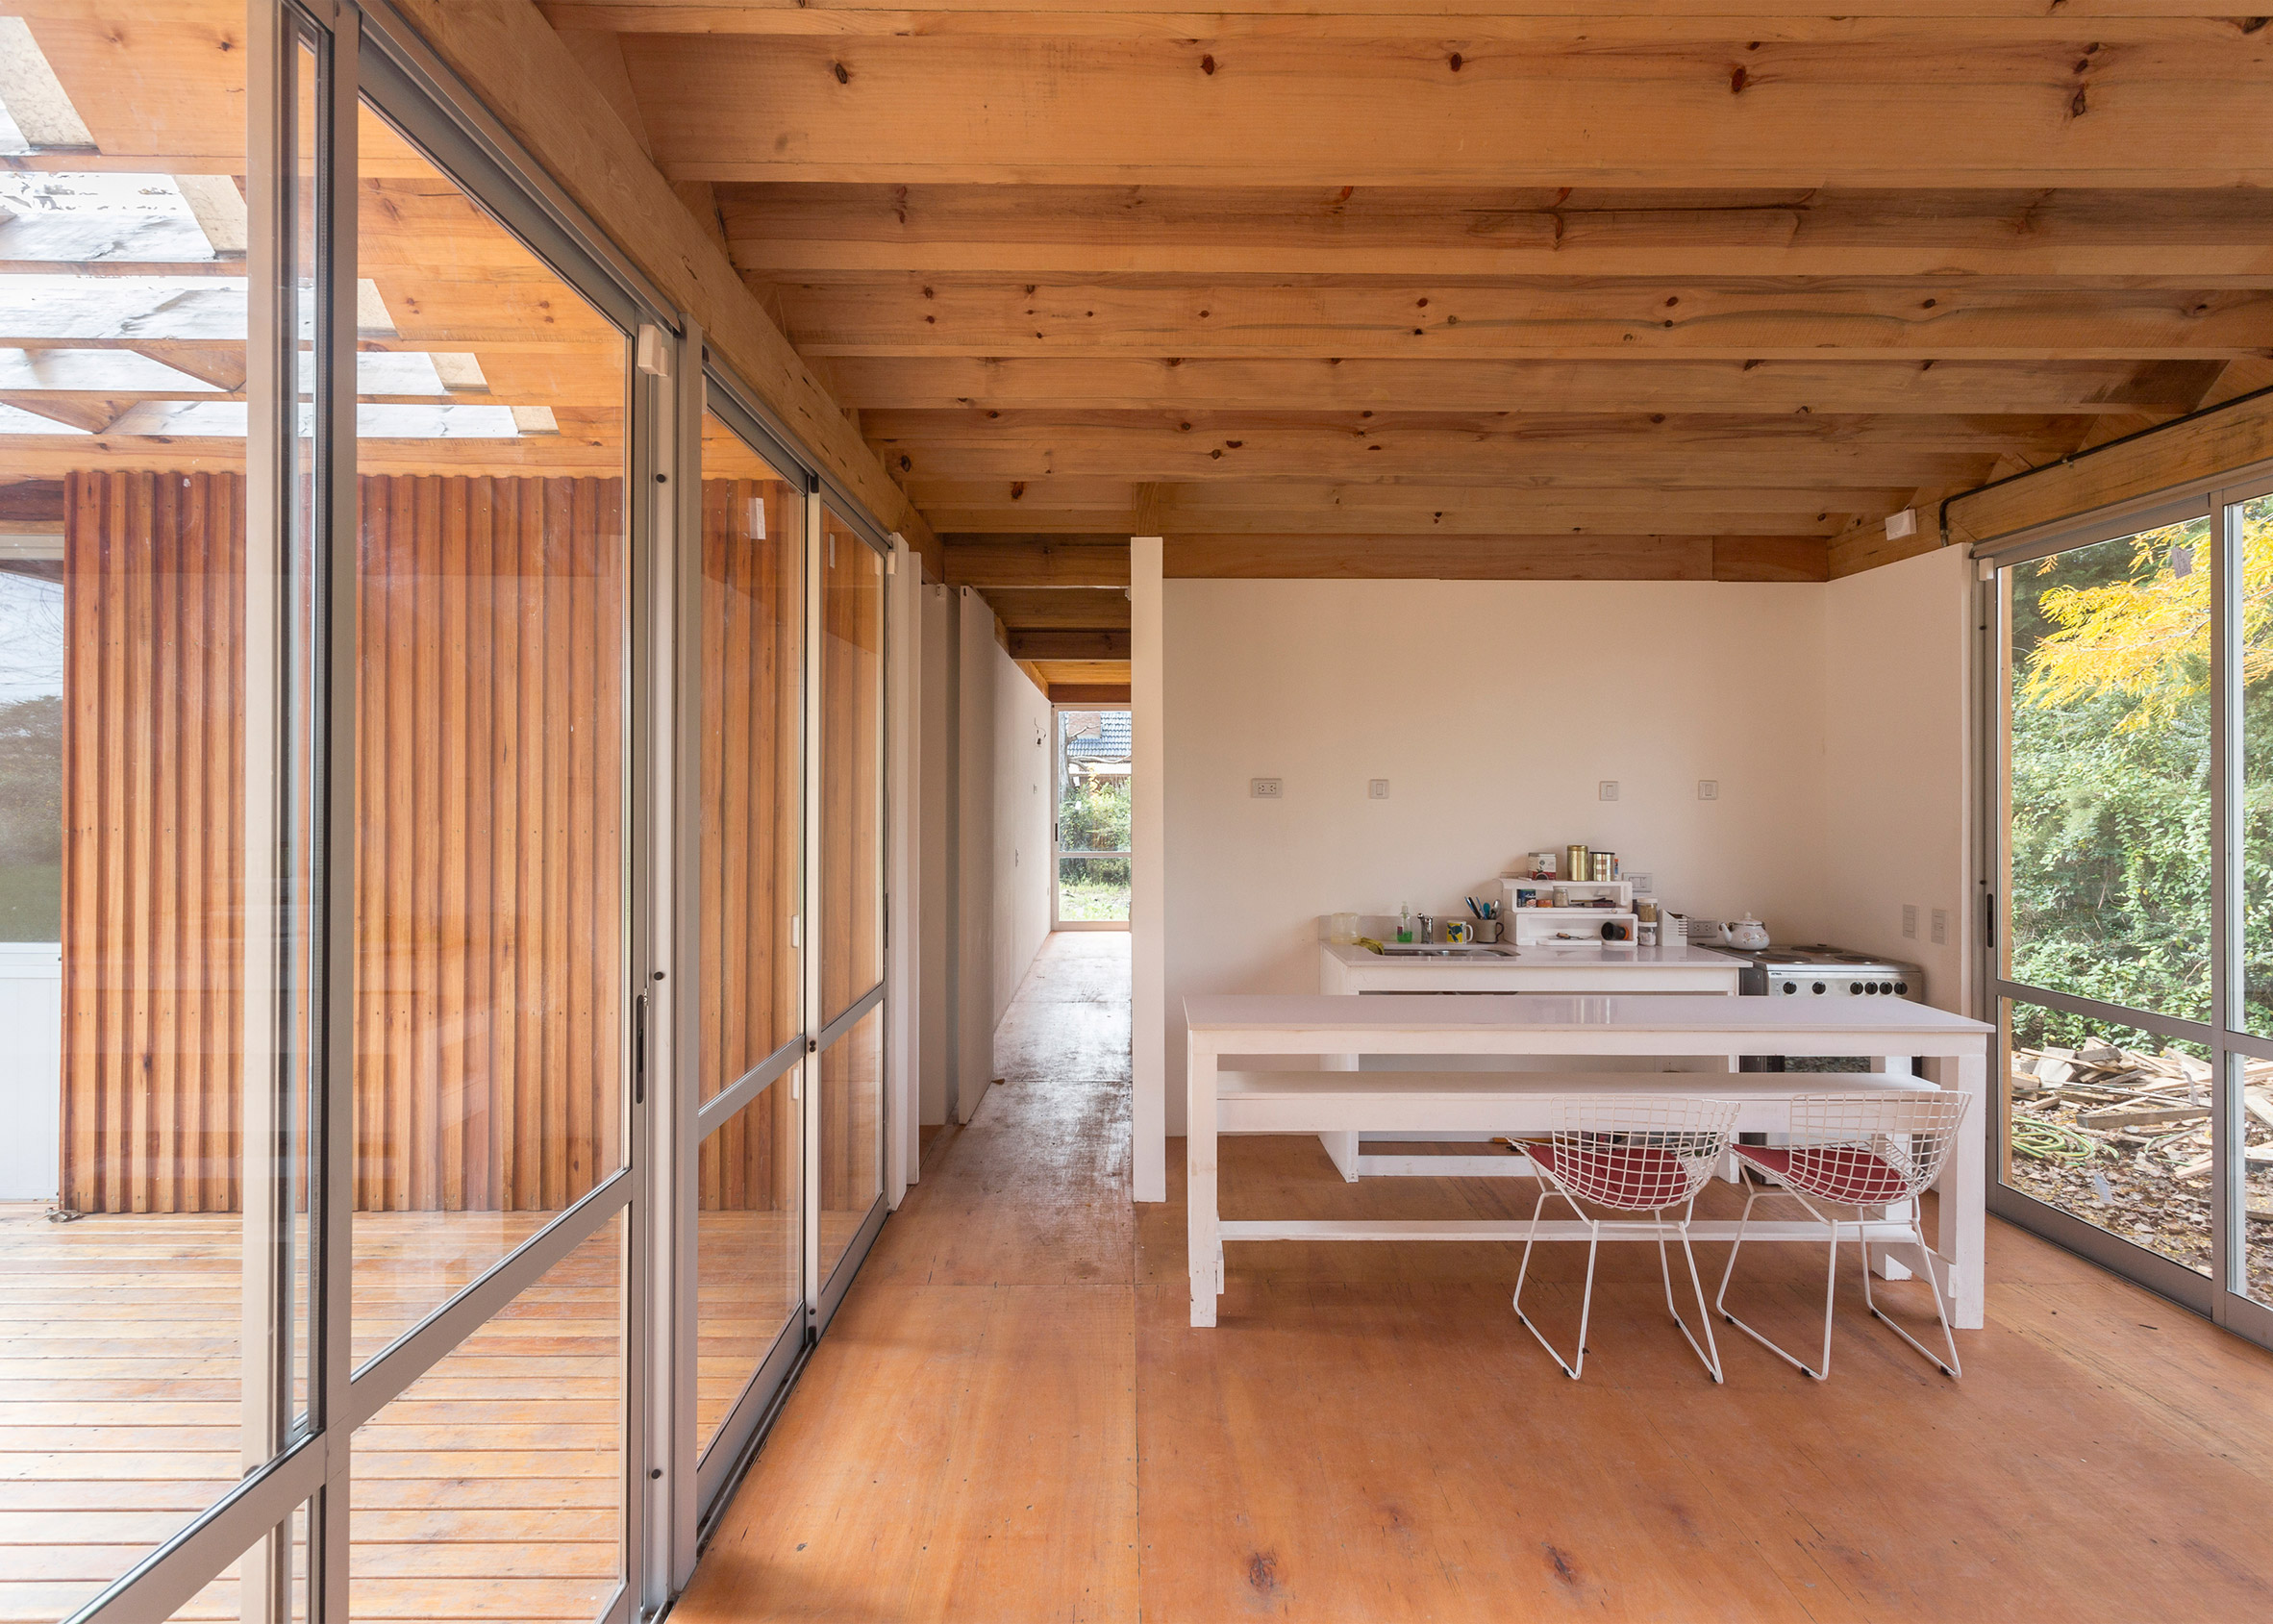 Zig-zagging roof covers Buenos Aires holiday home by Estudio Borrachia features